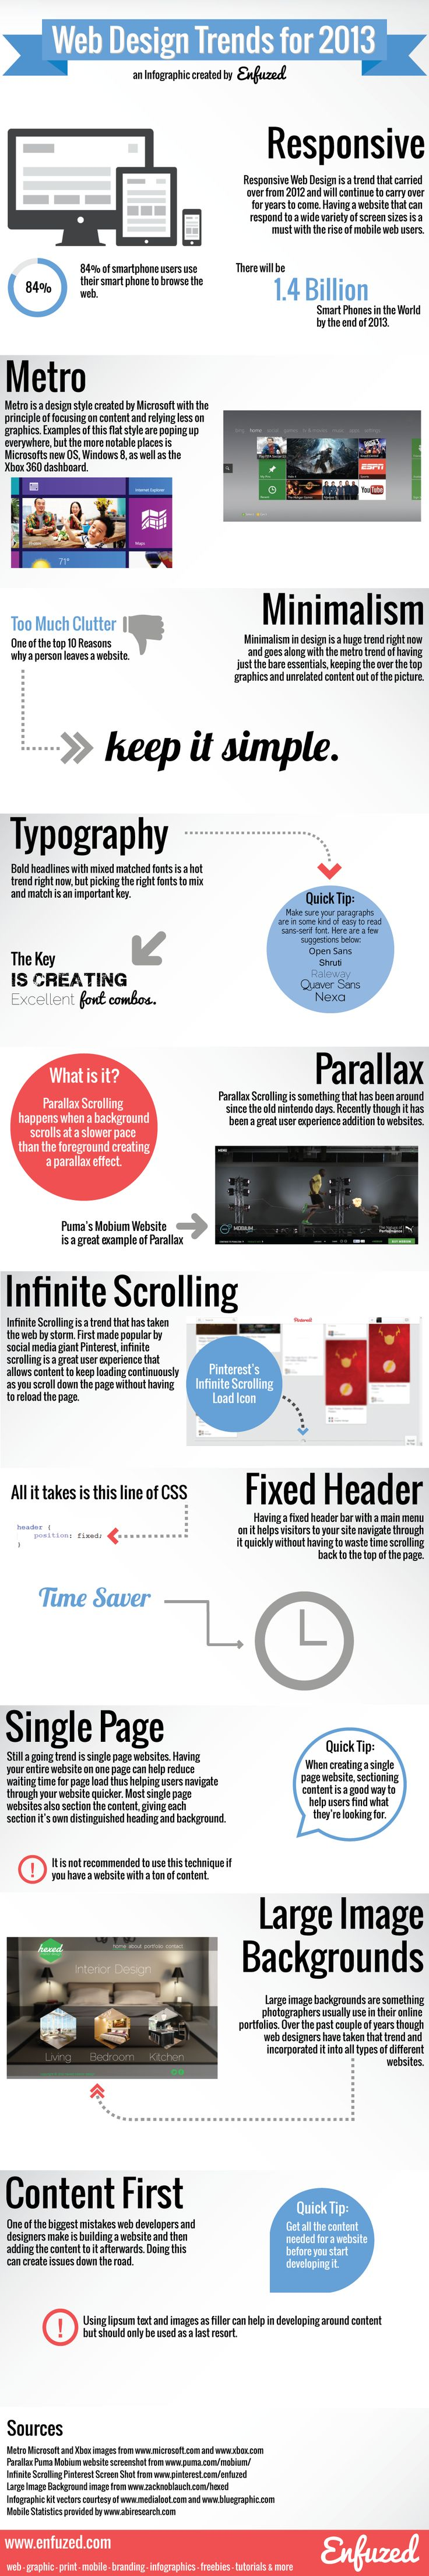 A infographic featuring web design trends for 2013 created by Enfuzed. This is the original!